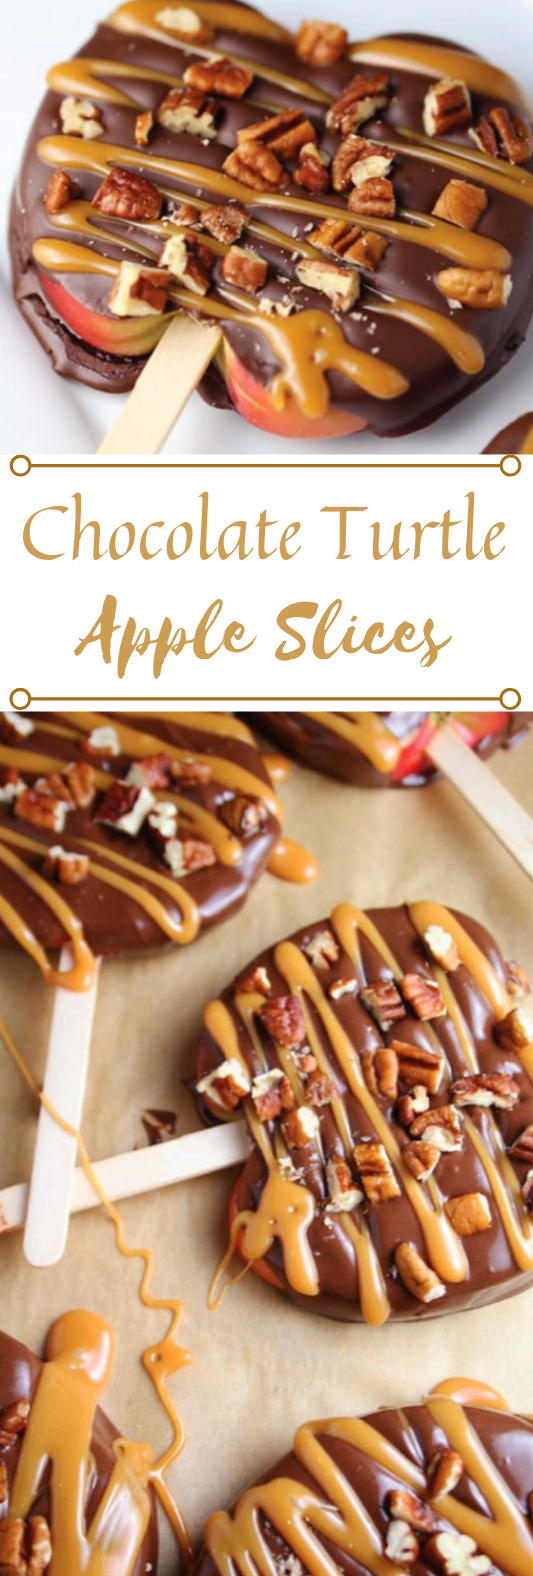 CHOCOLATE TURTLE APPLE SLICES #desserts #cakes #chocolate #pie #sugar